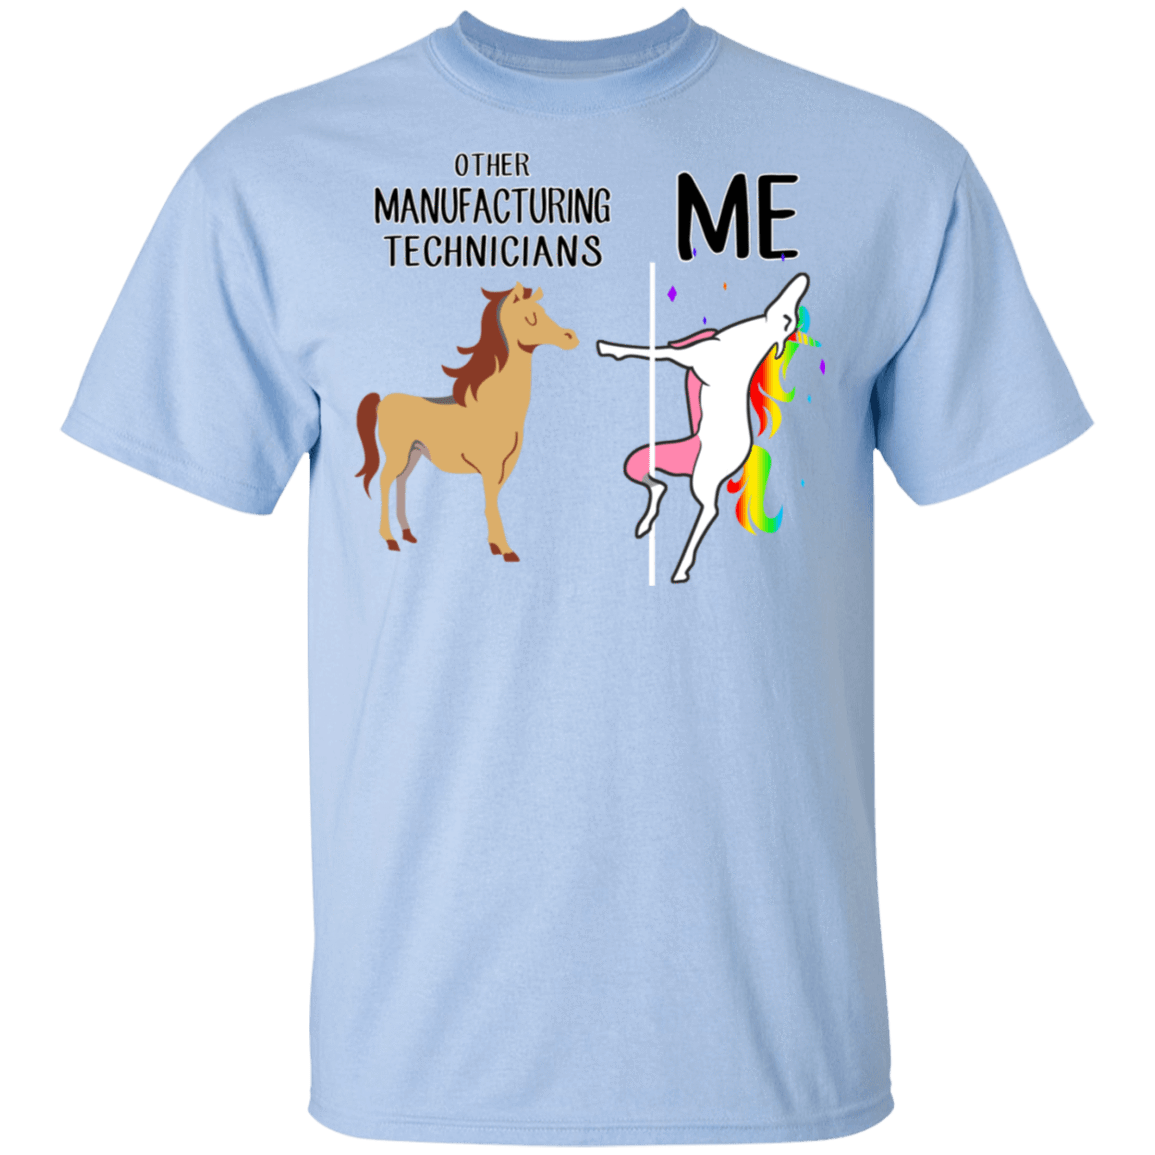 Other Manuafacturing And Me Unicorn T-Shirts, Hoodies 22-9800-80183502-47430 - Tee Ript